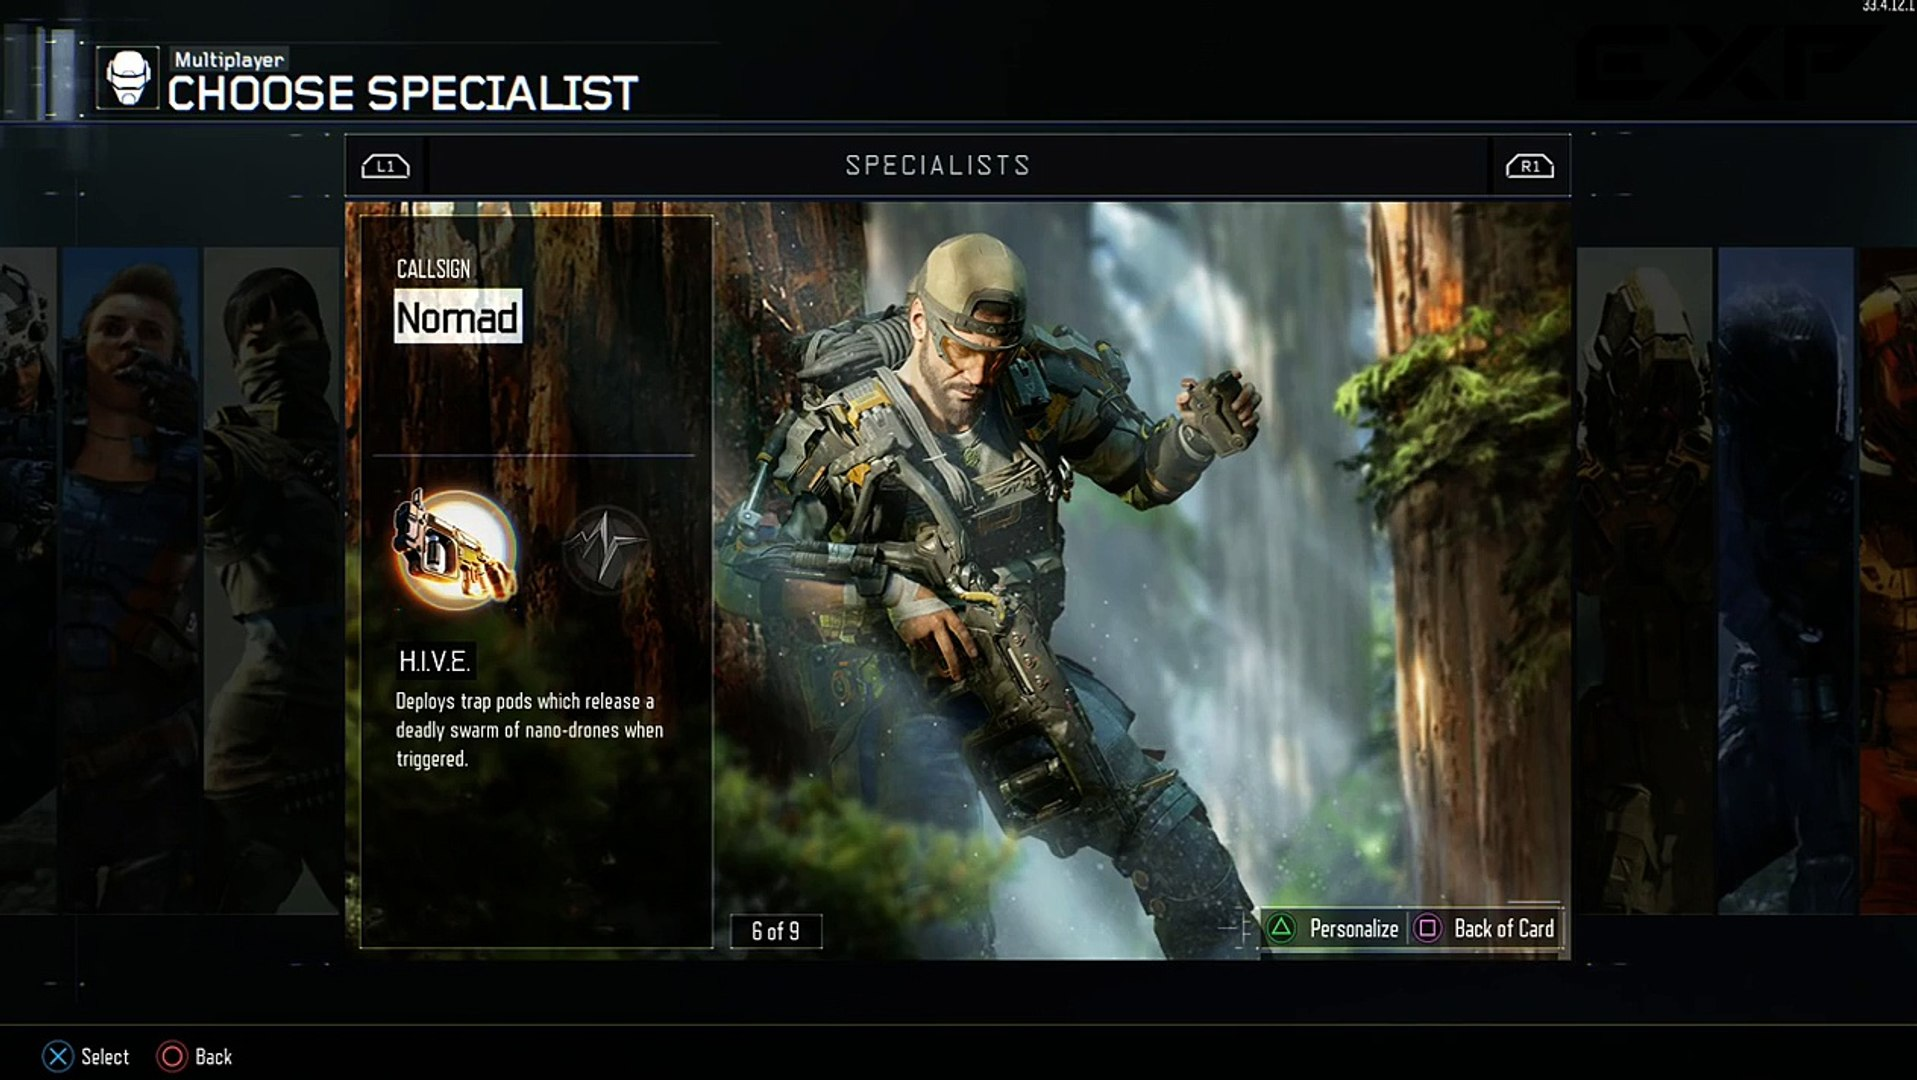 Black Ops 3 Nomad Specialist Personalization Gear Sets How To Get Custom Armor Video Dailymotion